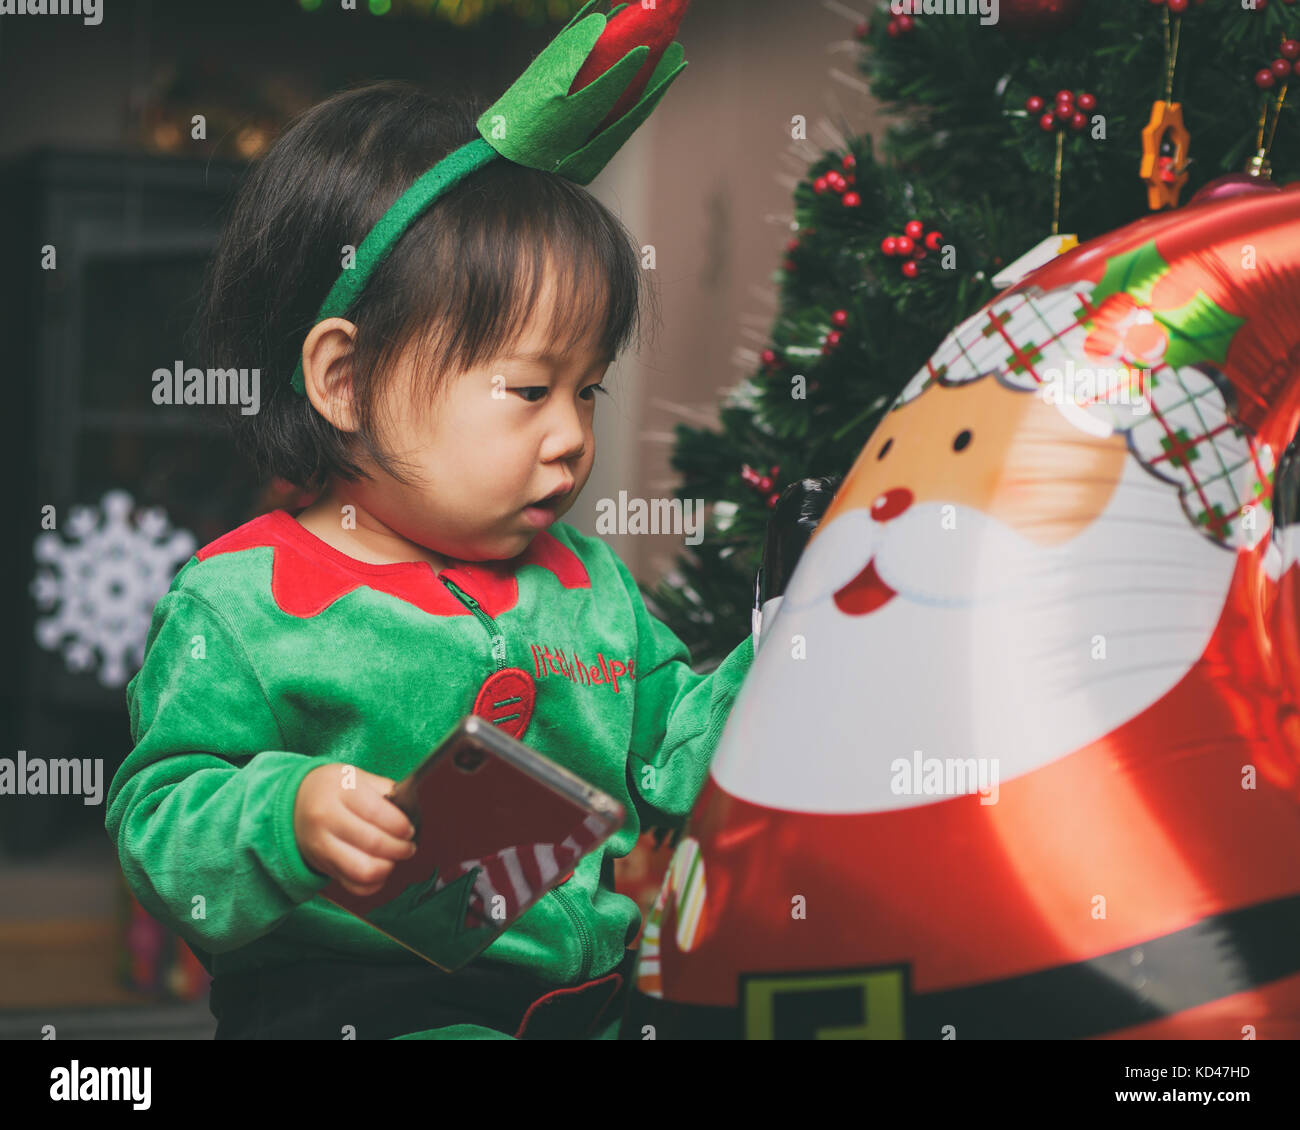 Christmas baby asian stock photos christmas baby asian for Baby christmas tree decoration